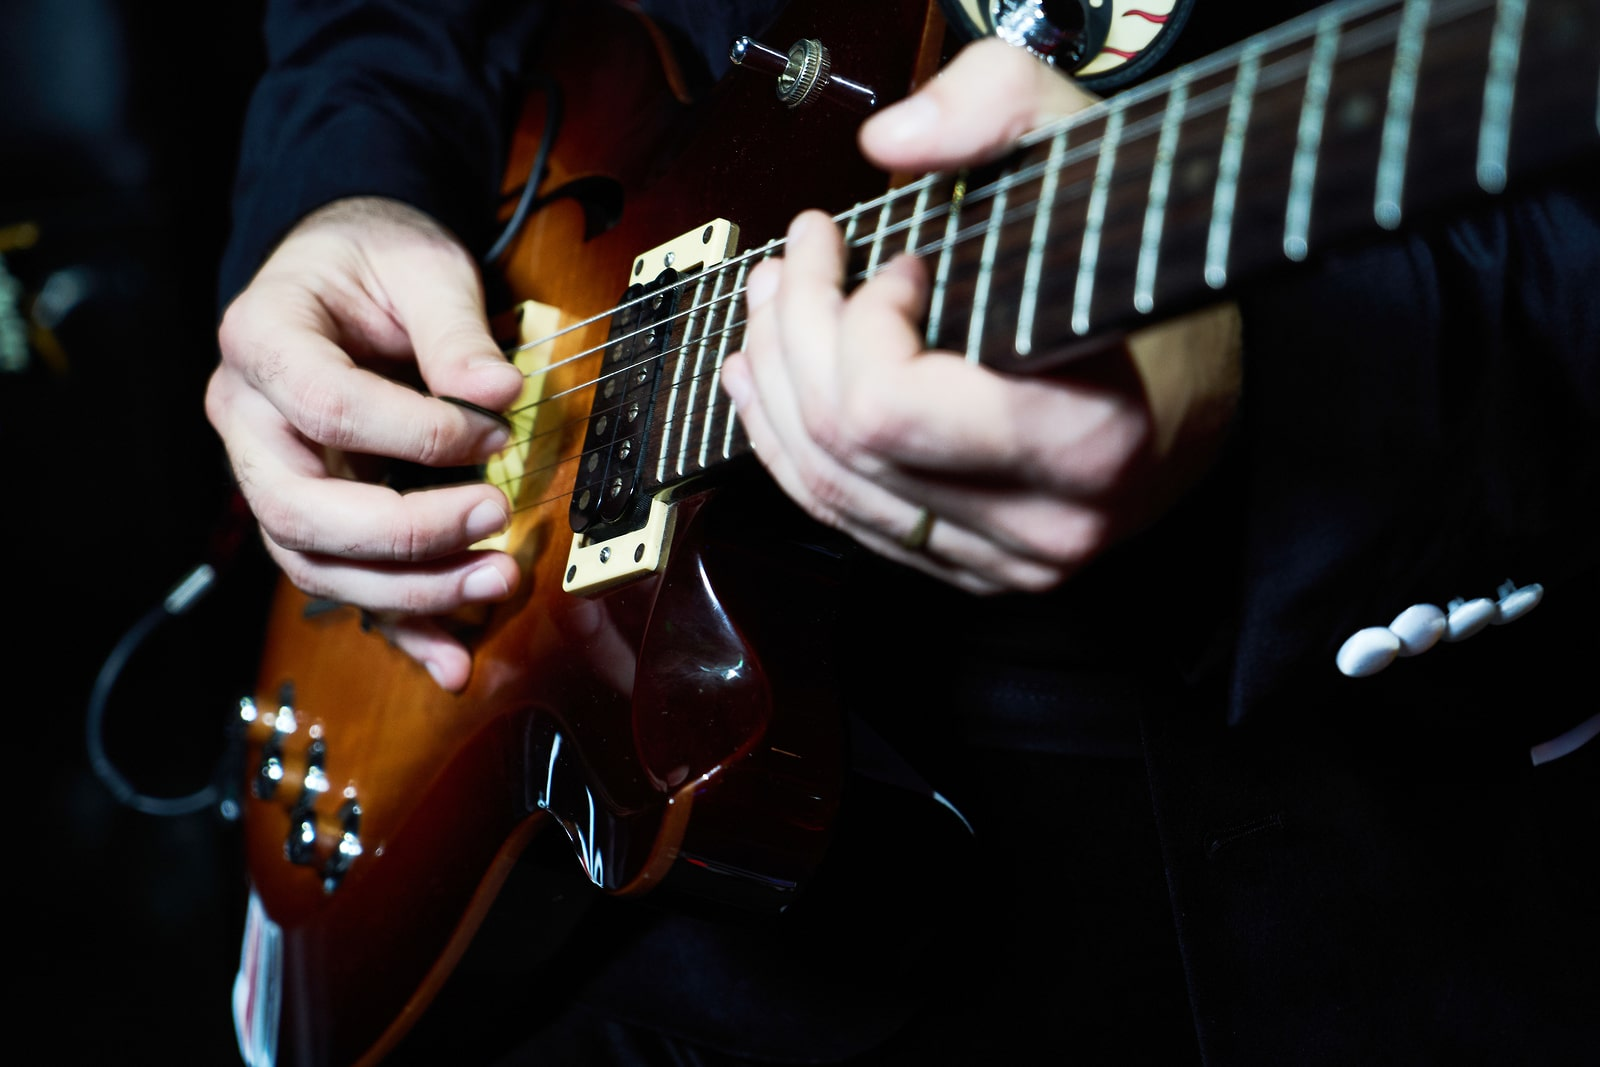 buy and sell guitar naples lehigh acres florida first pawn